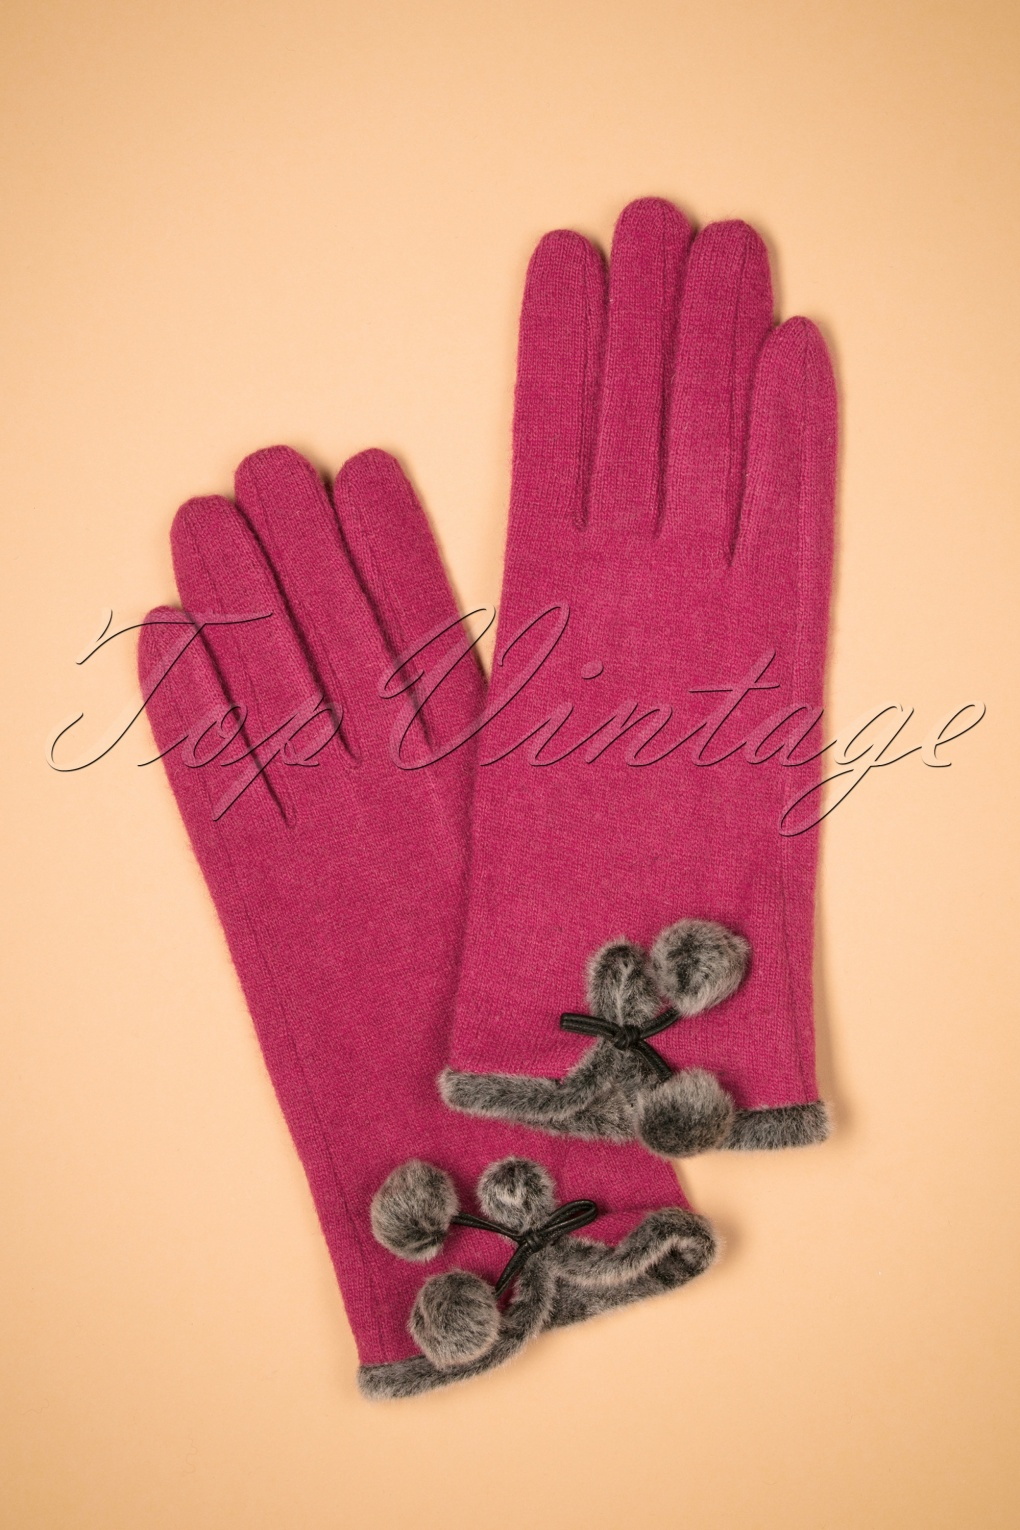 Vintage Style Gloves- Long, Wrist, Evening, Day, Leather, Lace 40s Betty Pom Pom Wool Gloves in Damson Purple £23.99 AT vintagedancer.com